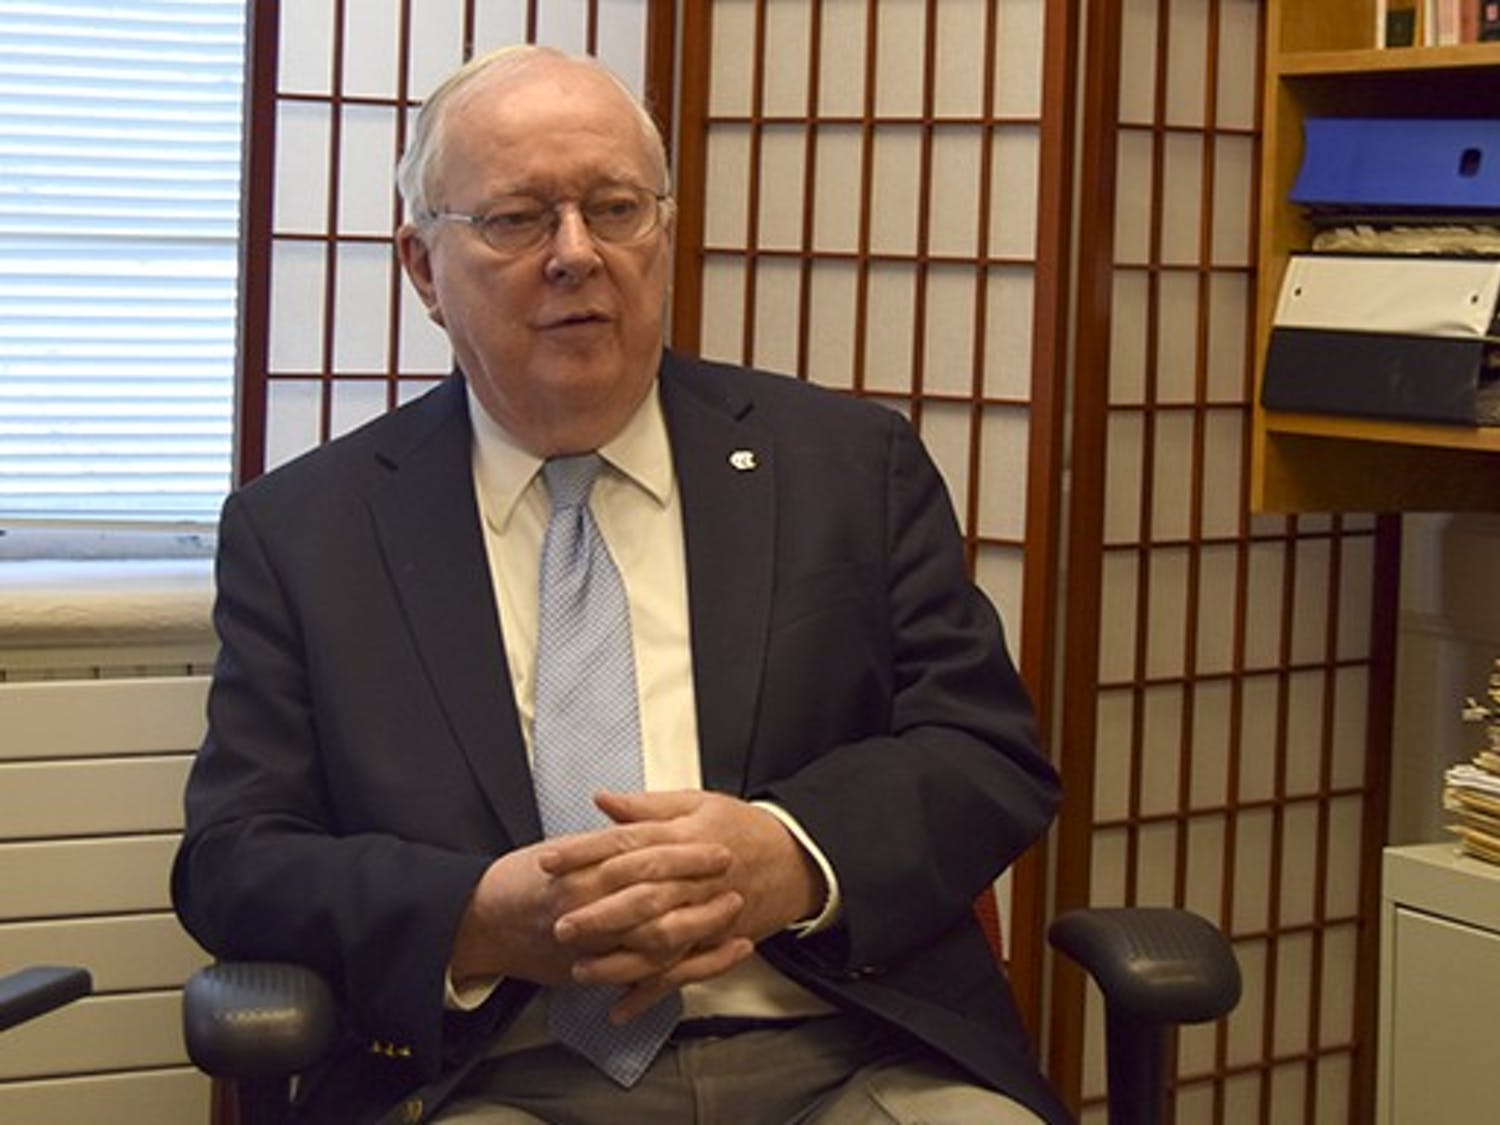 Joe Ferrell, the outgoing Secretary of the Faculty, reminices about his time at UNC.